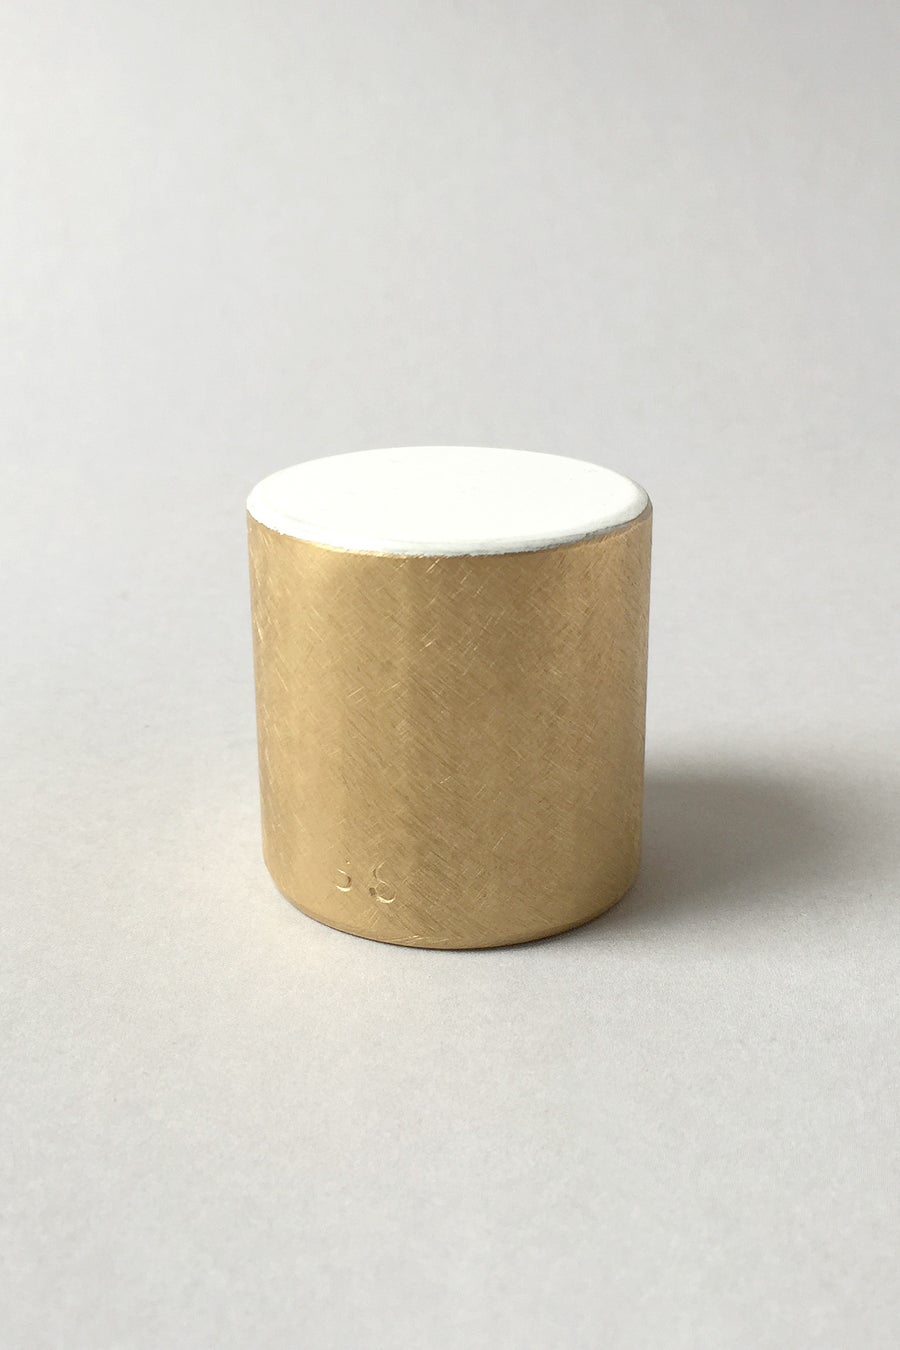 Image of Float paperweight - Circle ::: SOLD OUT :::